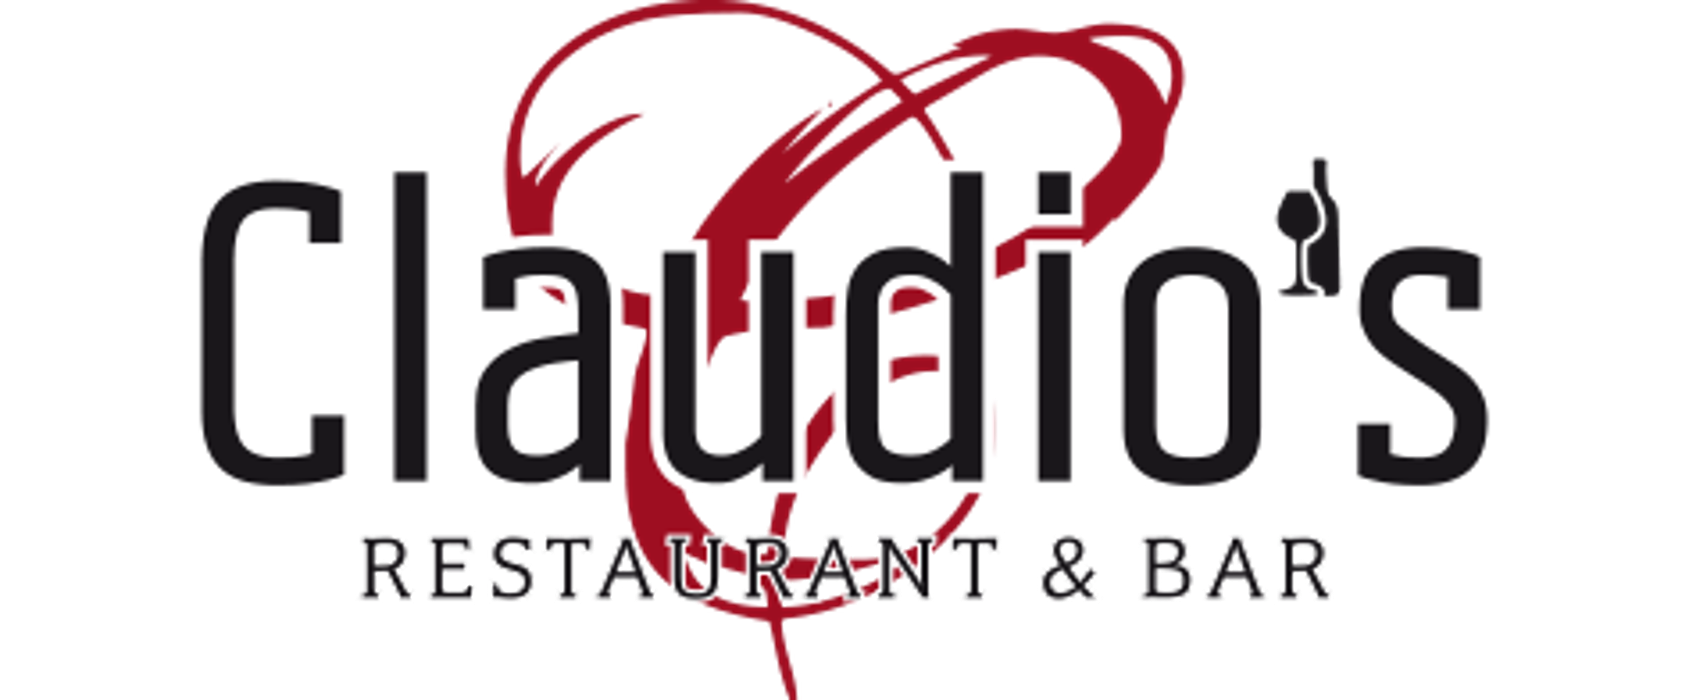 stynamic.alt.text.logo.1 Claudio's Restaurant & Bar stynamic.alt.text.logo.2 Hamburg